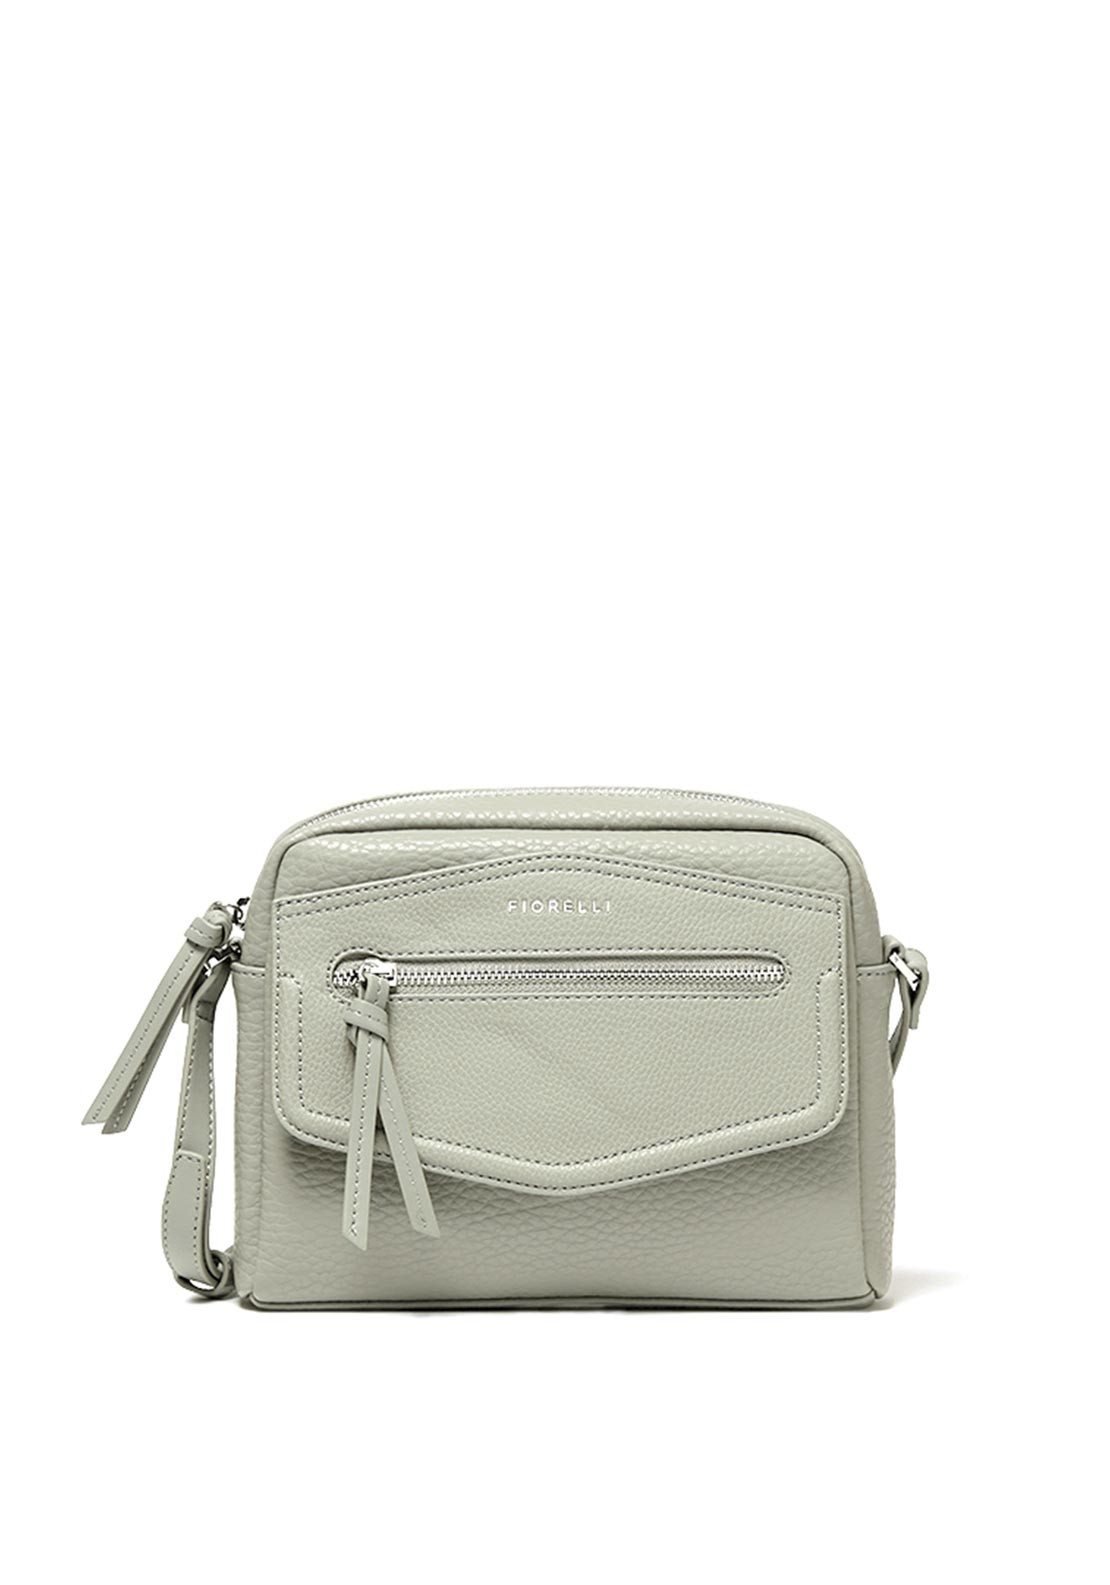 Fiorelli Fiona Zip Top Crossbody Bag, Wild Mint   McElhinneys c4a3ee7069